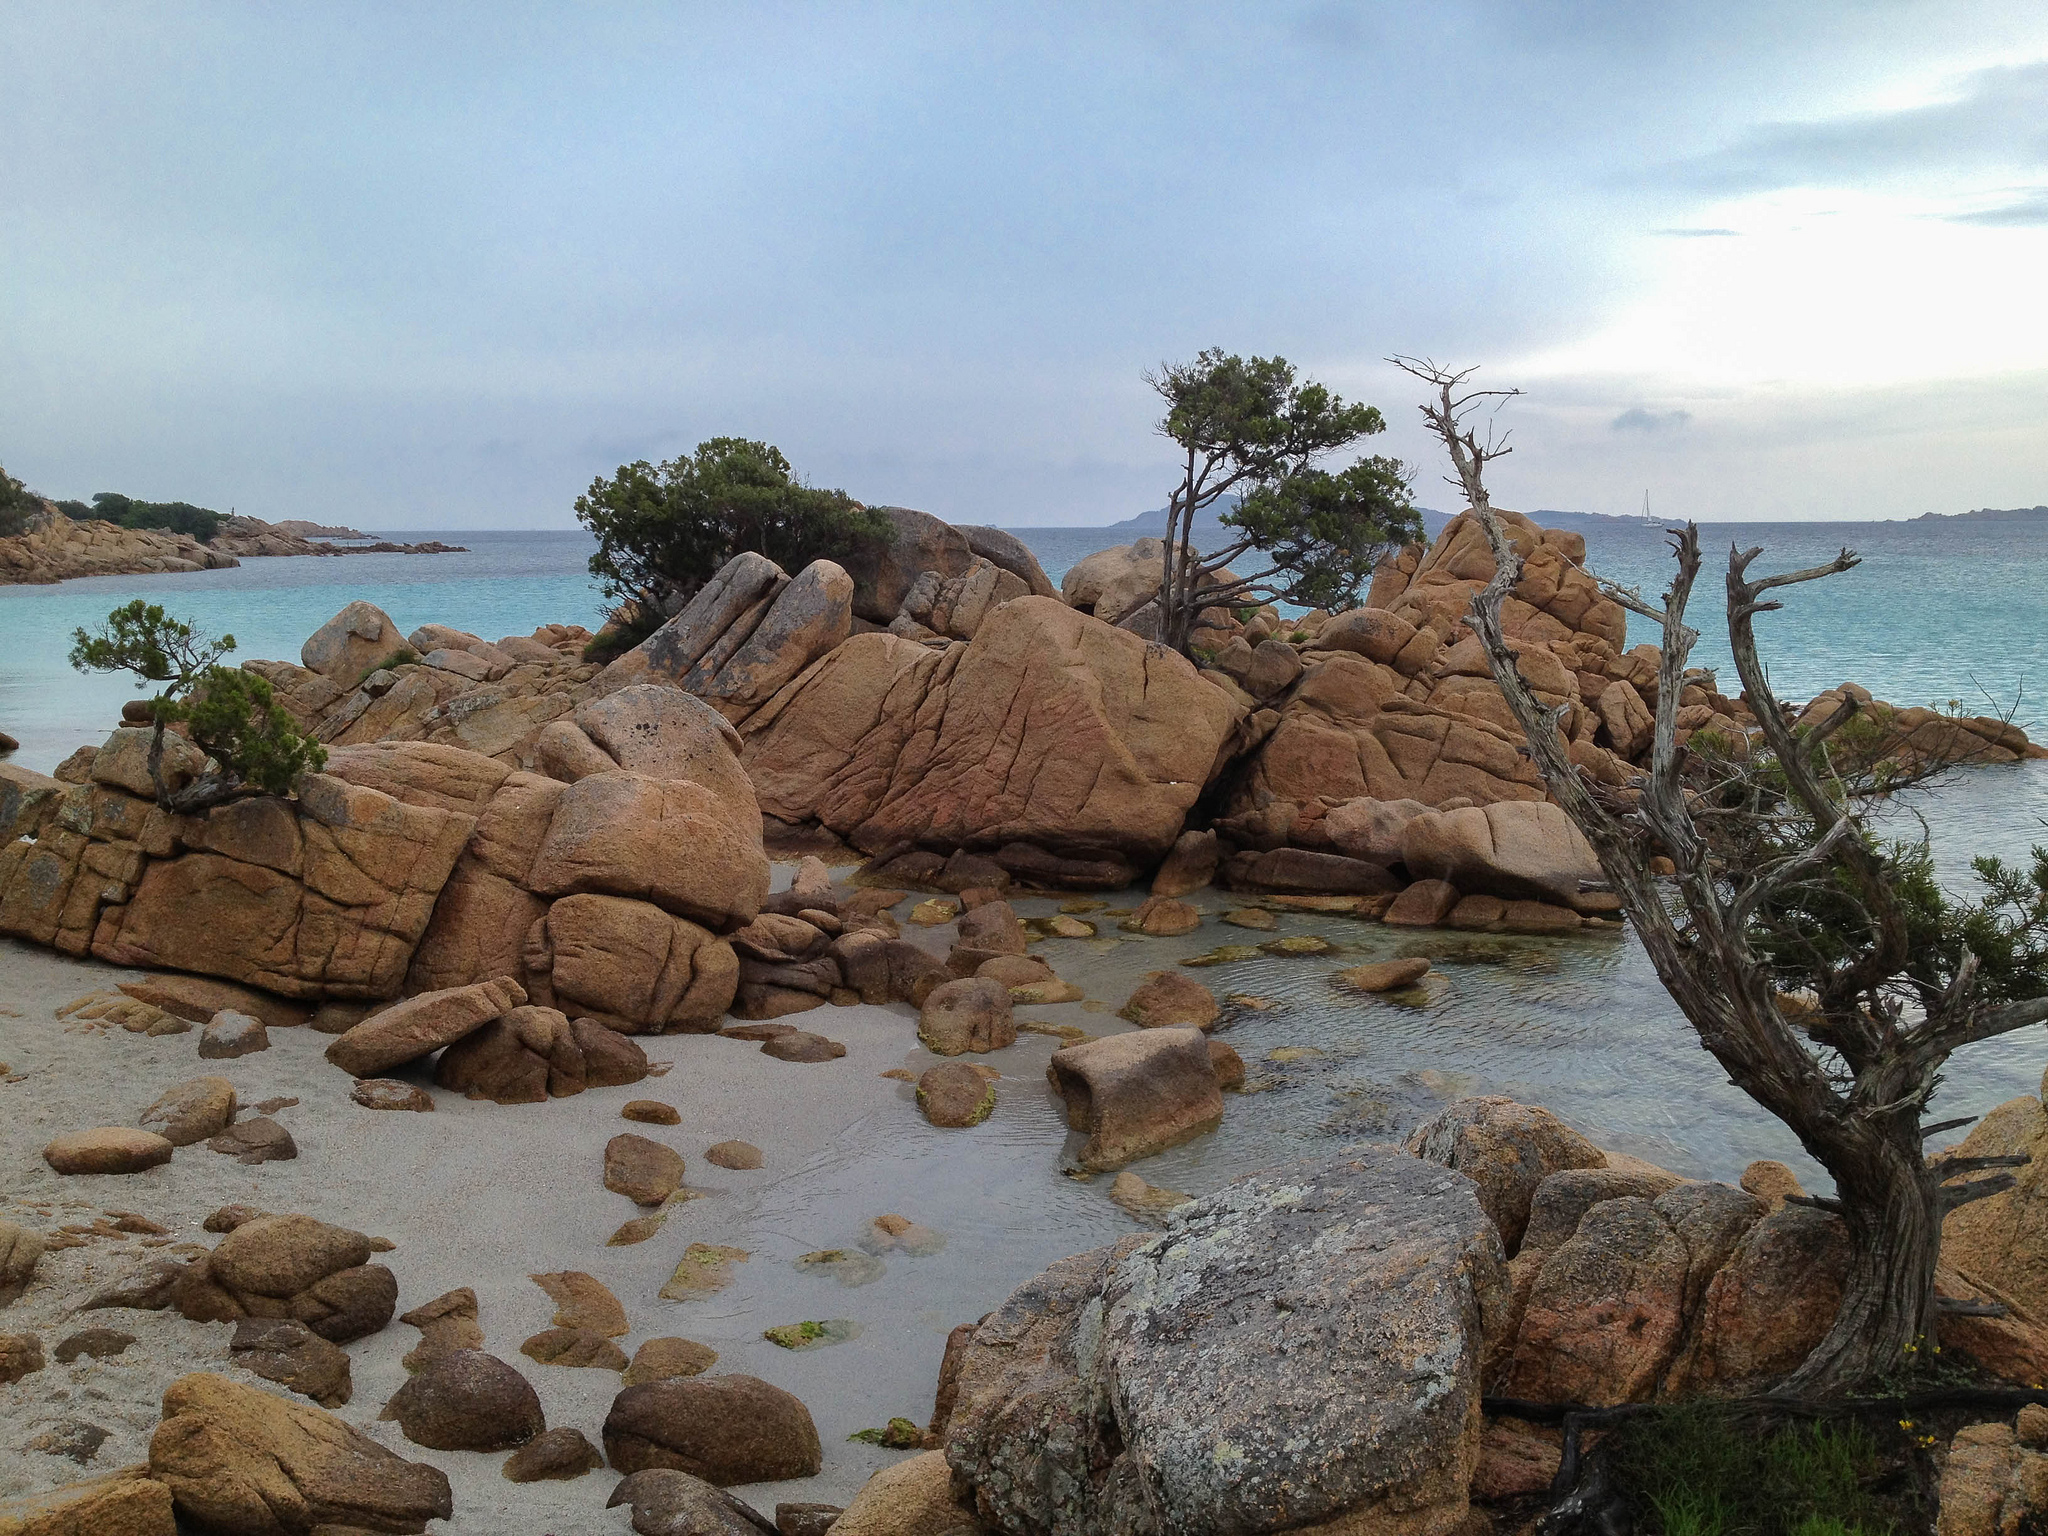 Peaceful and picturesque, head down to the Costa Smeralda to soak up some sun and go for a paddle. Image credit:  Andreas Issleib / Creative Commons